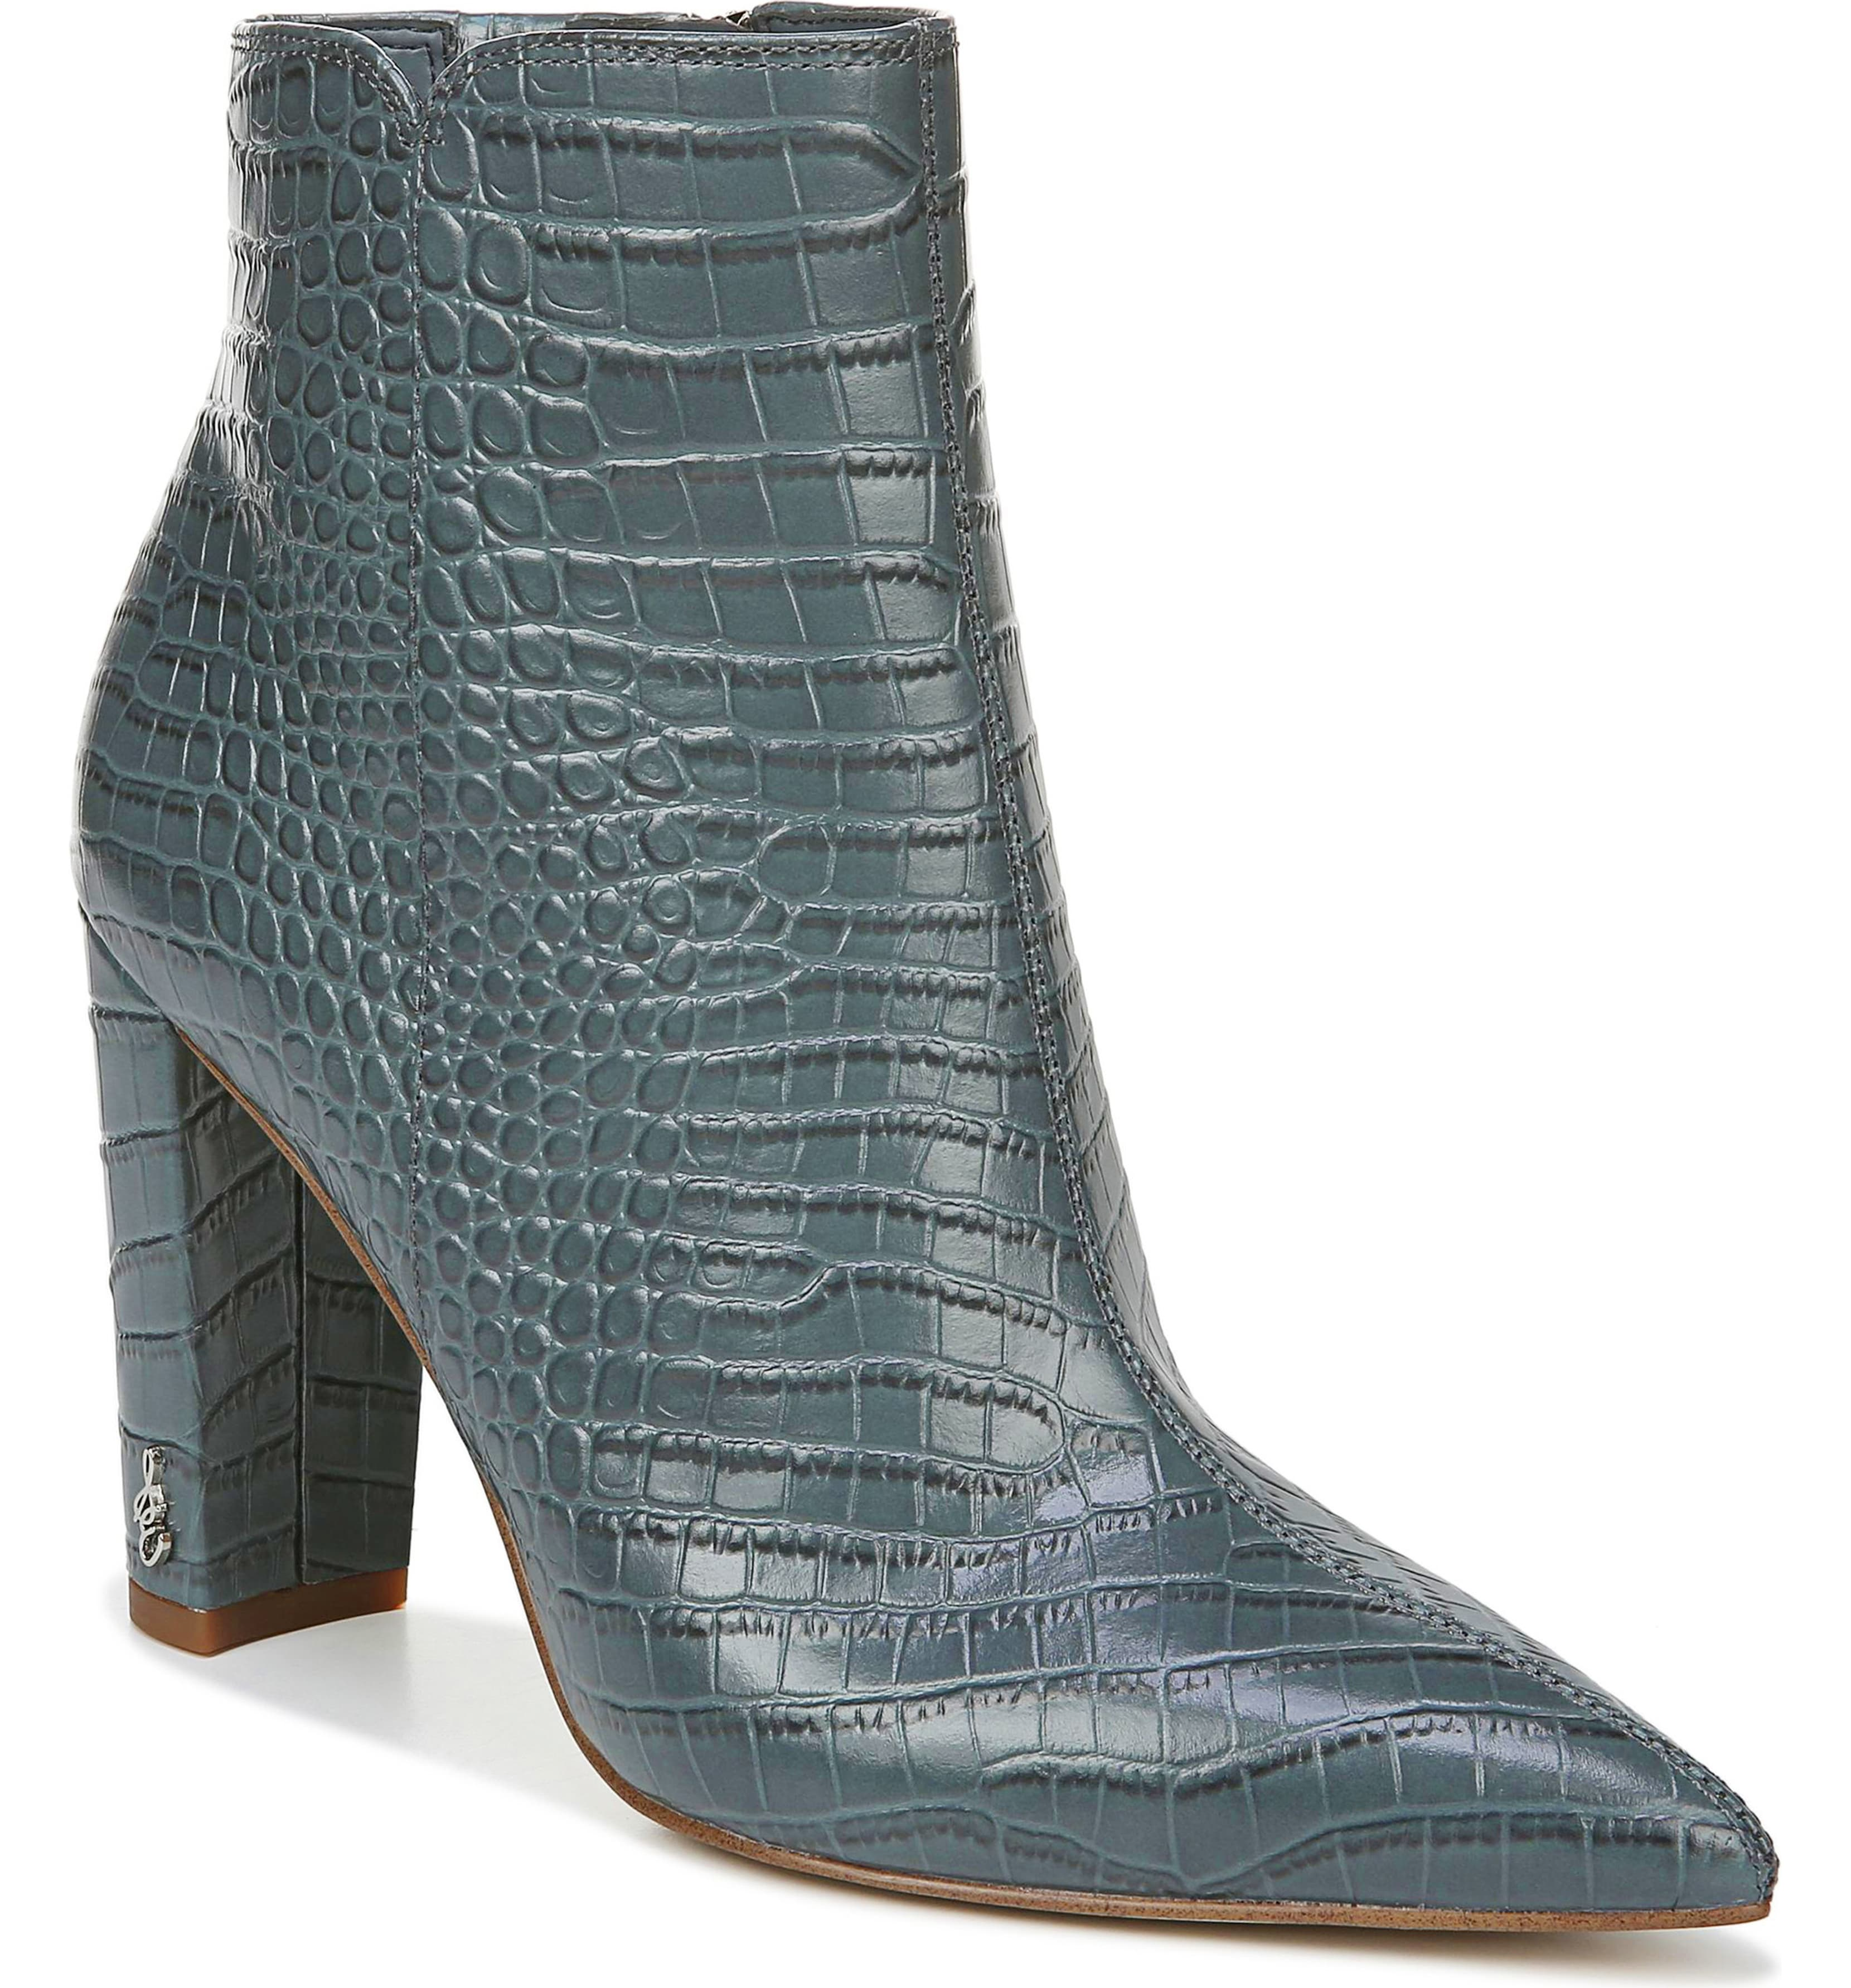 Faux reptile skin boots.